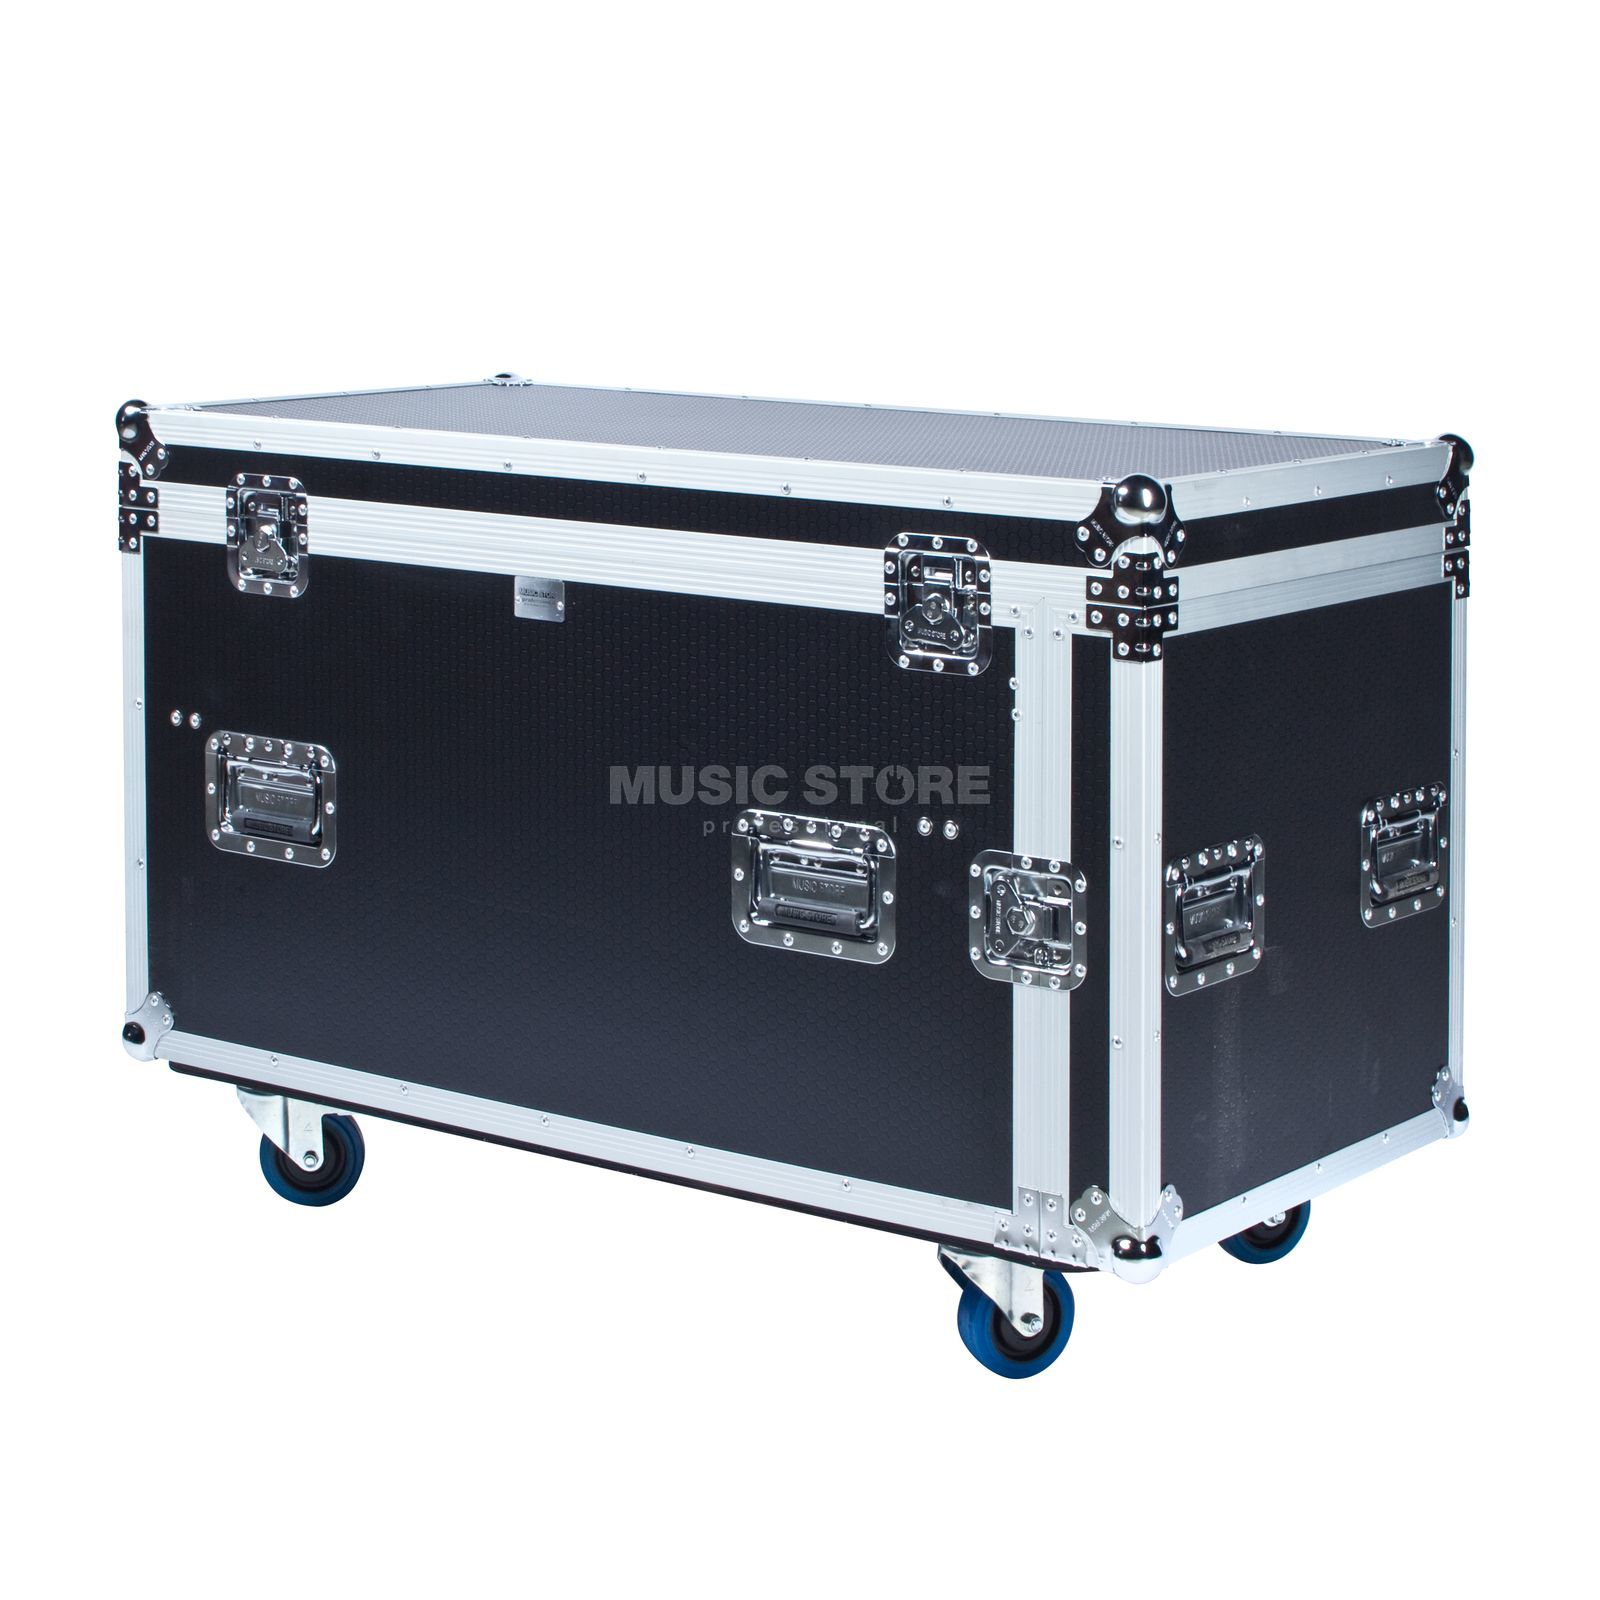 MUSIC STORE MUSIC STORE Mic Stand Case up to 15 stands Produktbillede